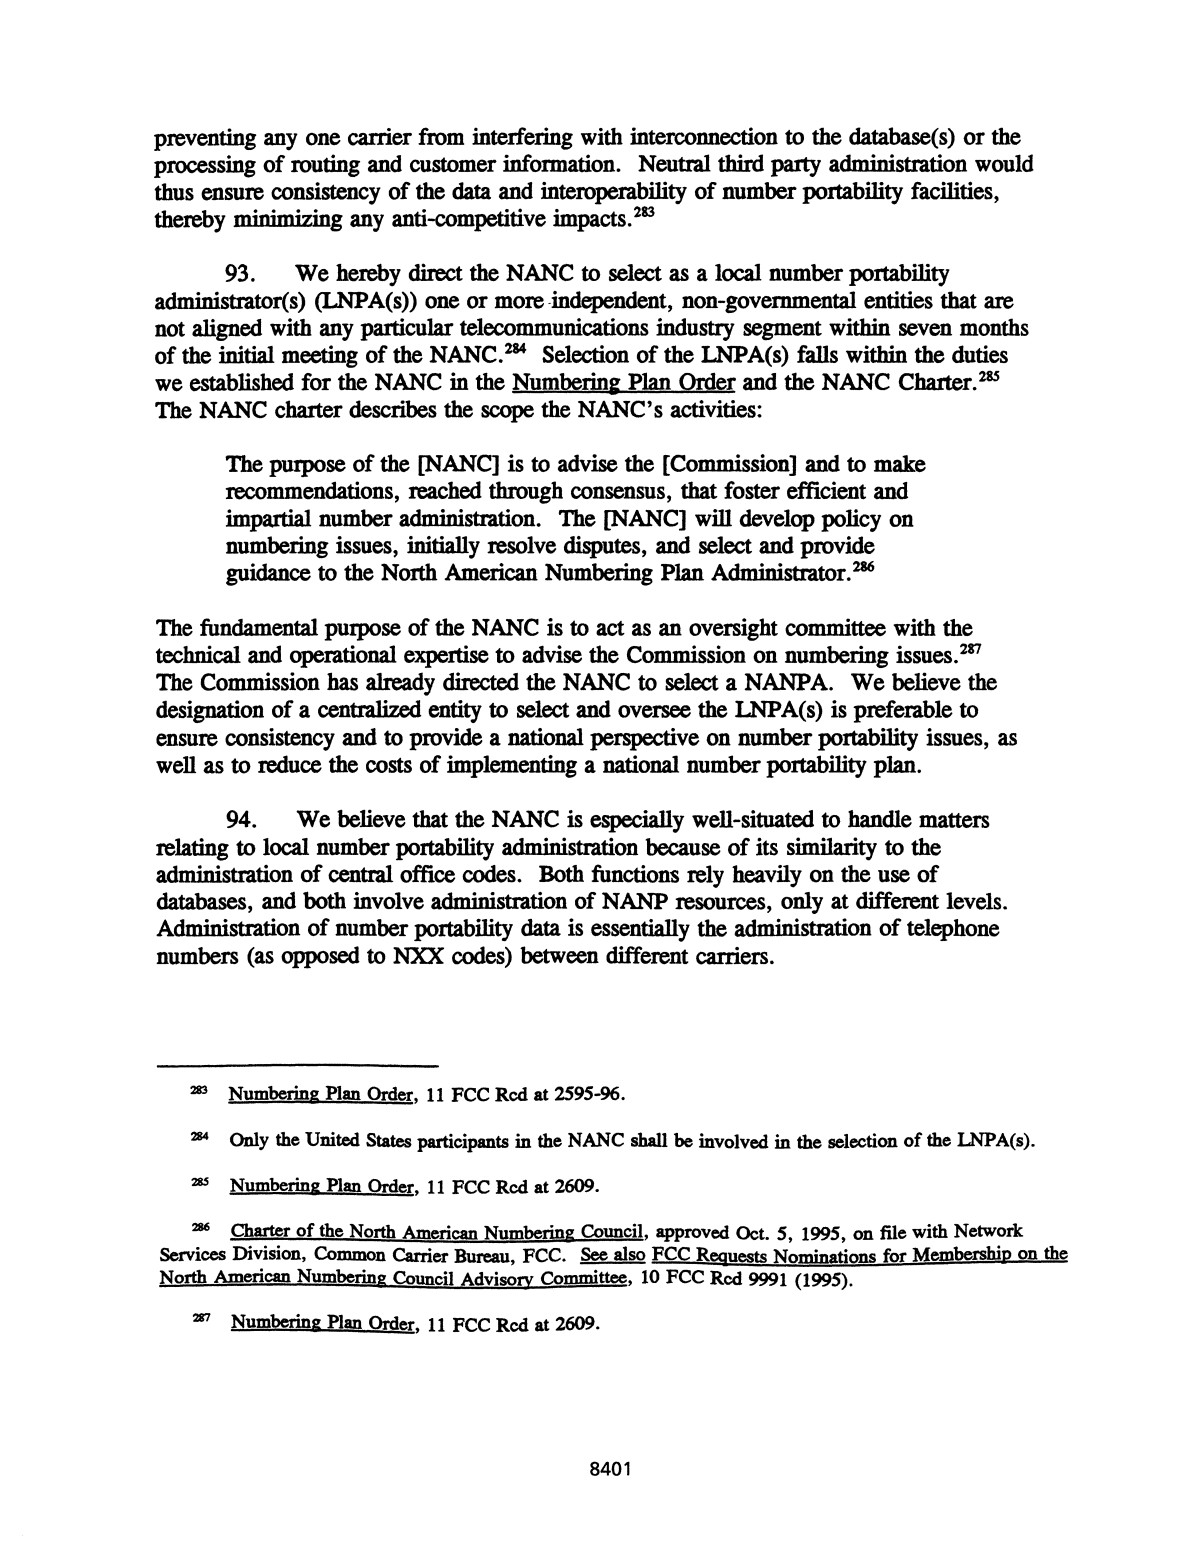 FCC Record, Volume 11, No. 15, Pages 7970 to 8559, July 8 - July 19, 1996                                                                                                      8401